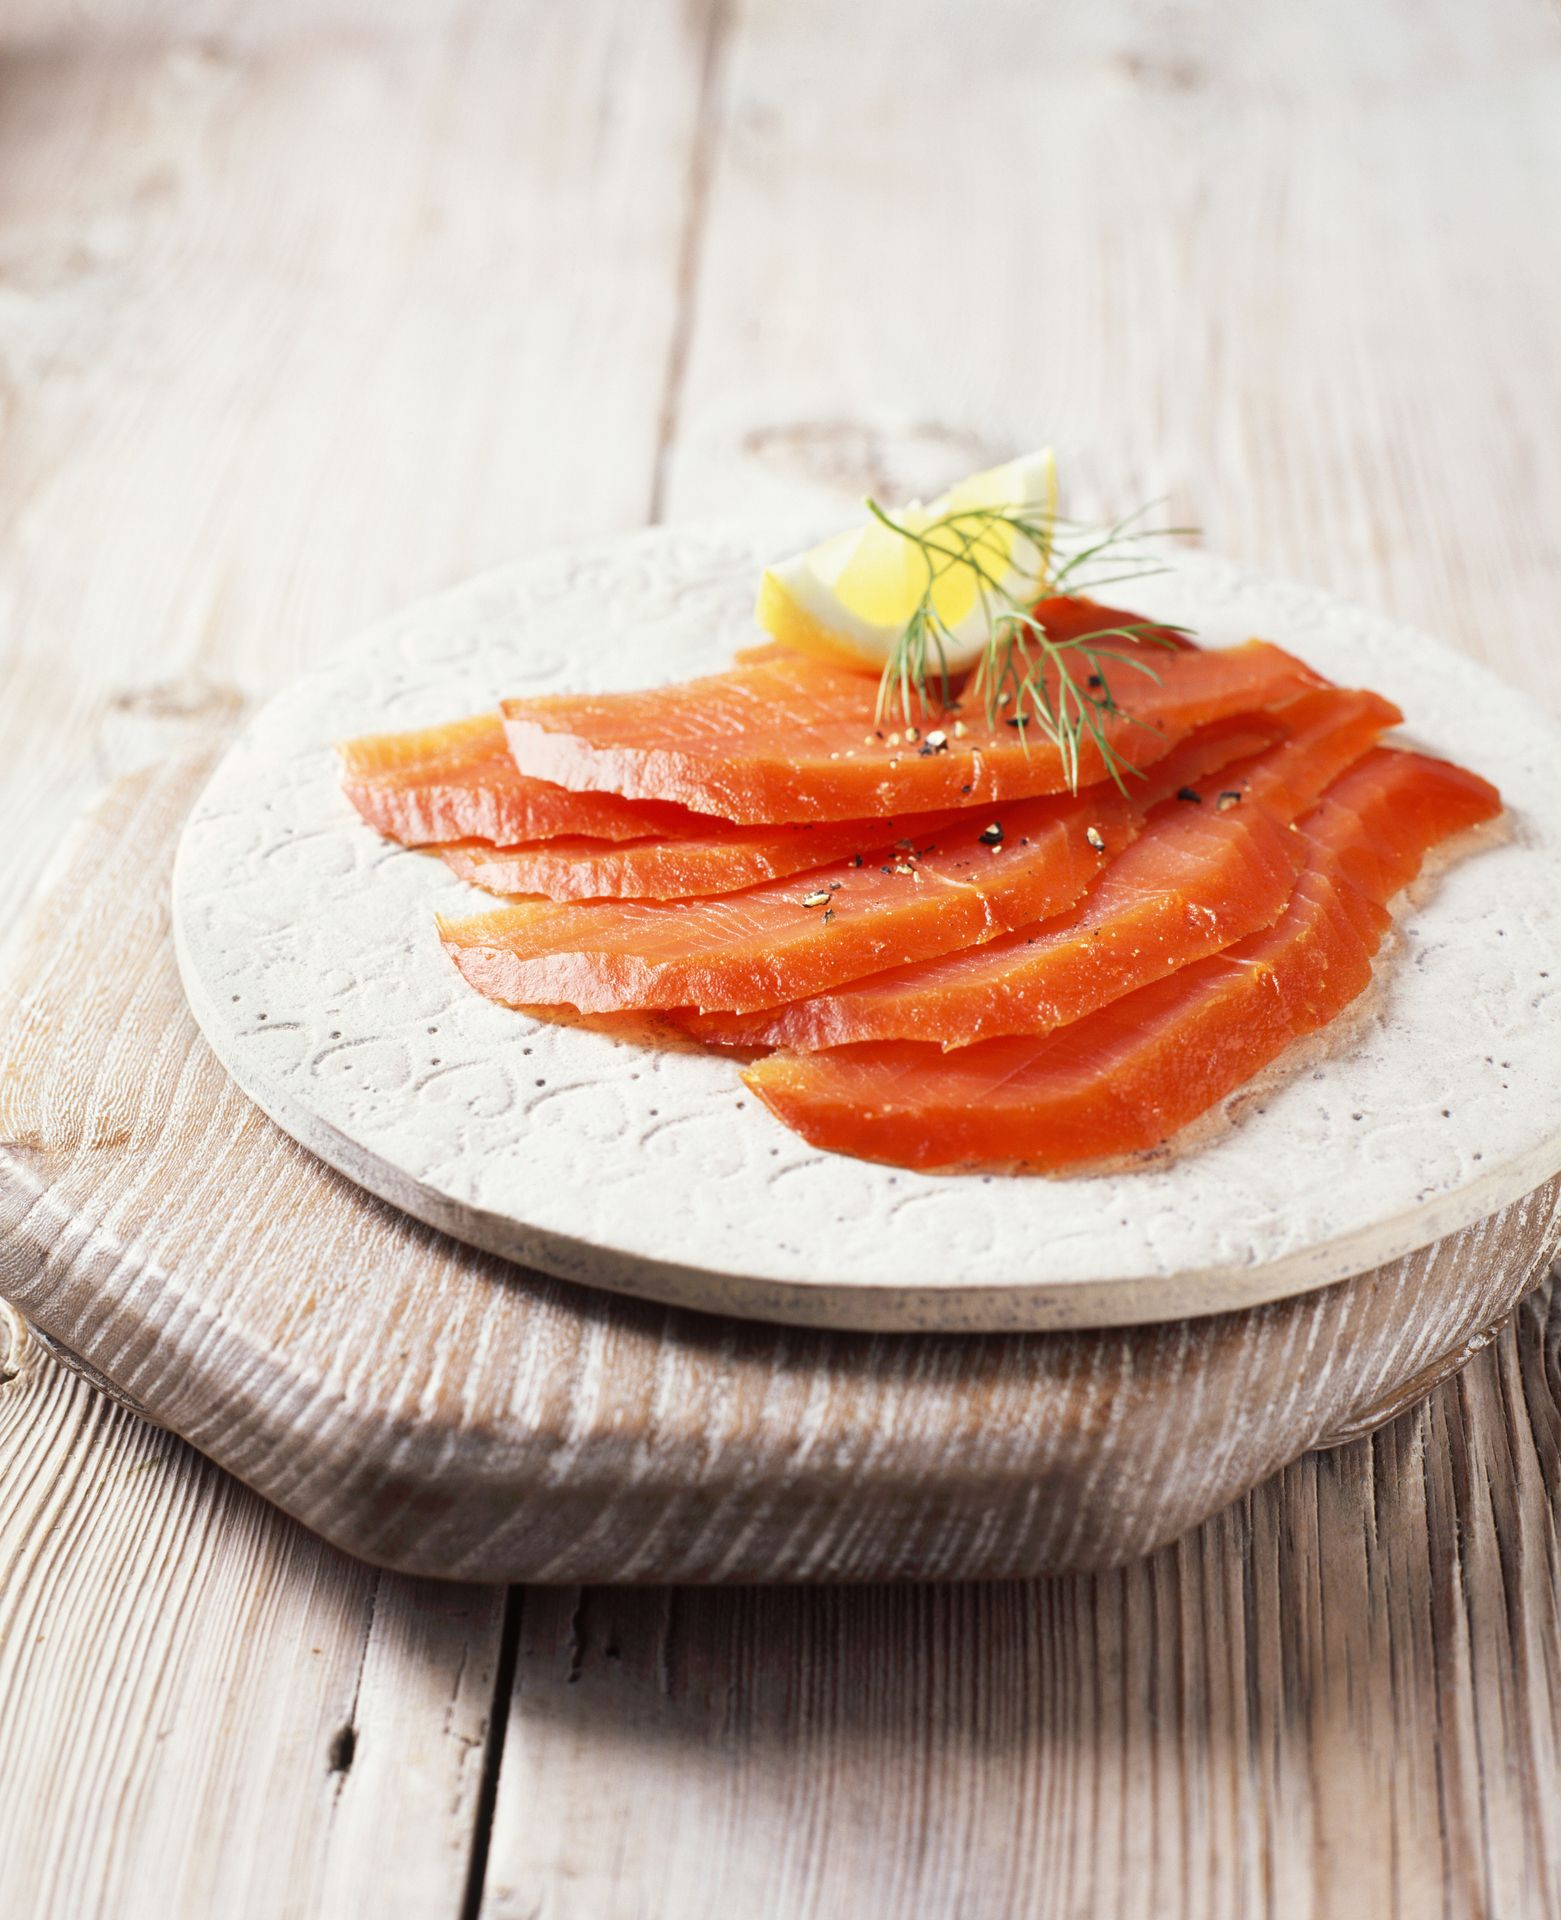 Best smoked salmon for Christmas 2019